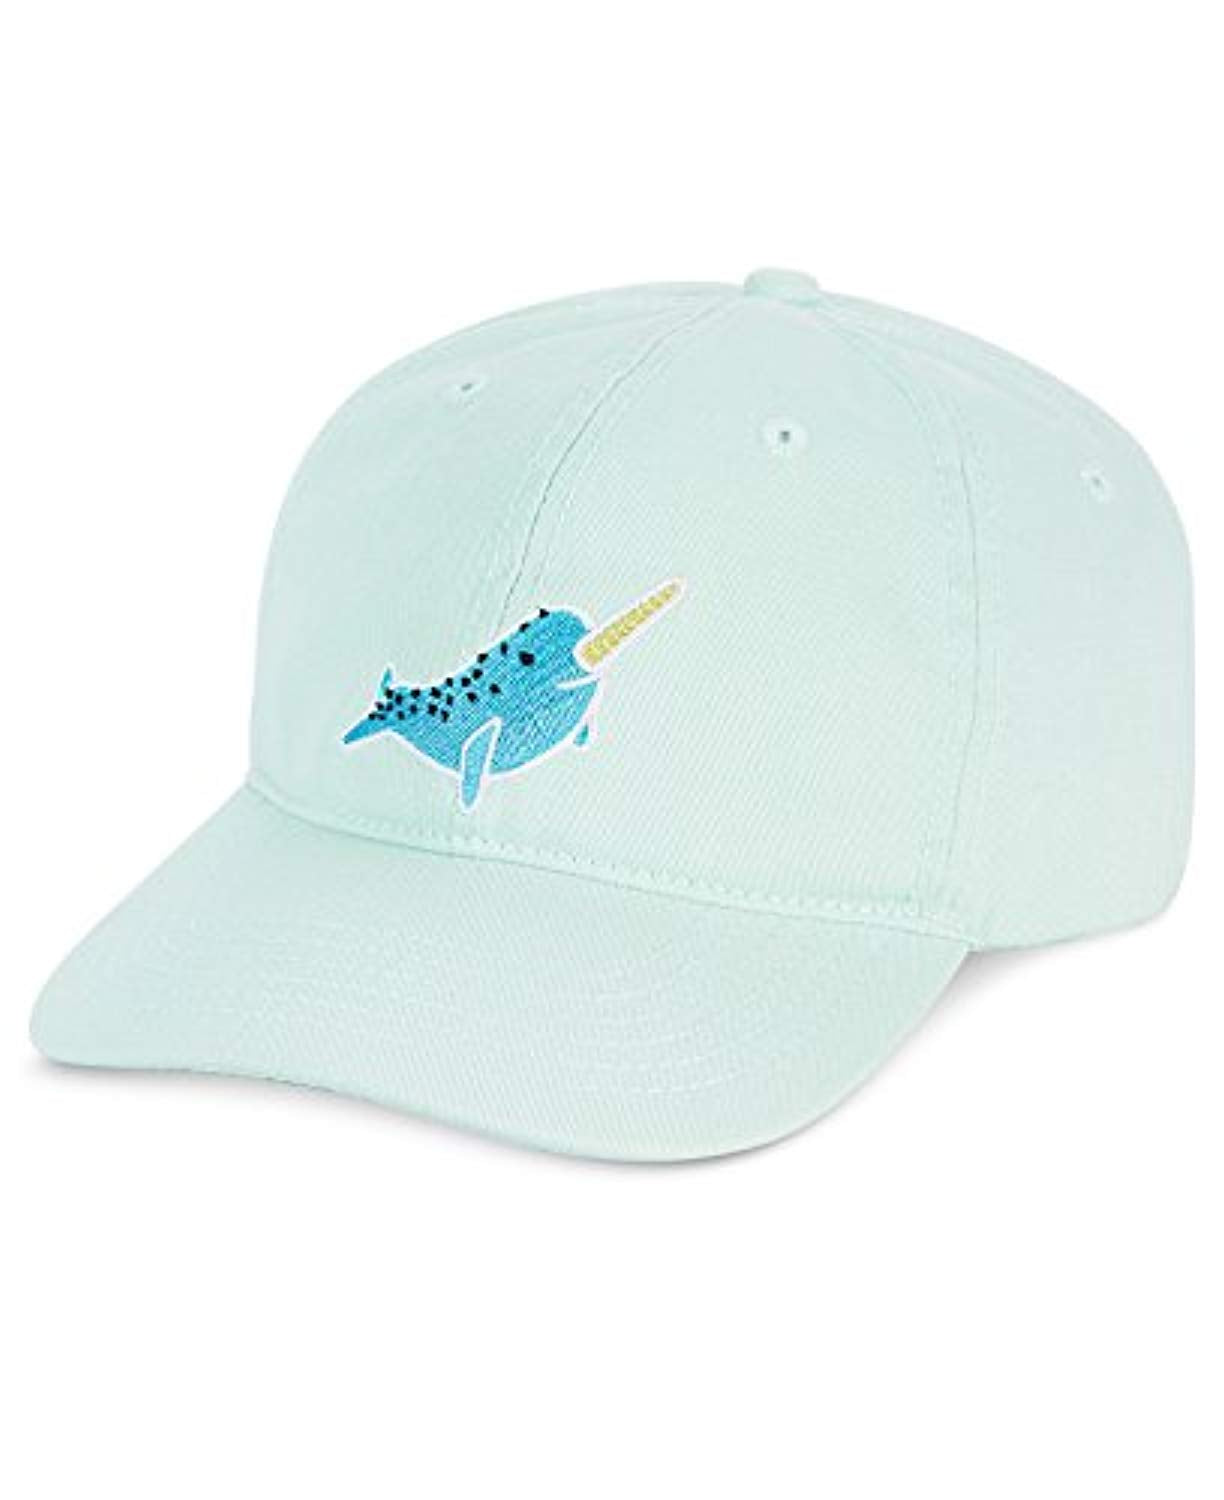 Celebrate Shop Narwhal Embroidered Baseball Cap, Mint Green (One Size)  Write Review